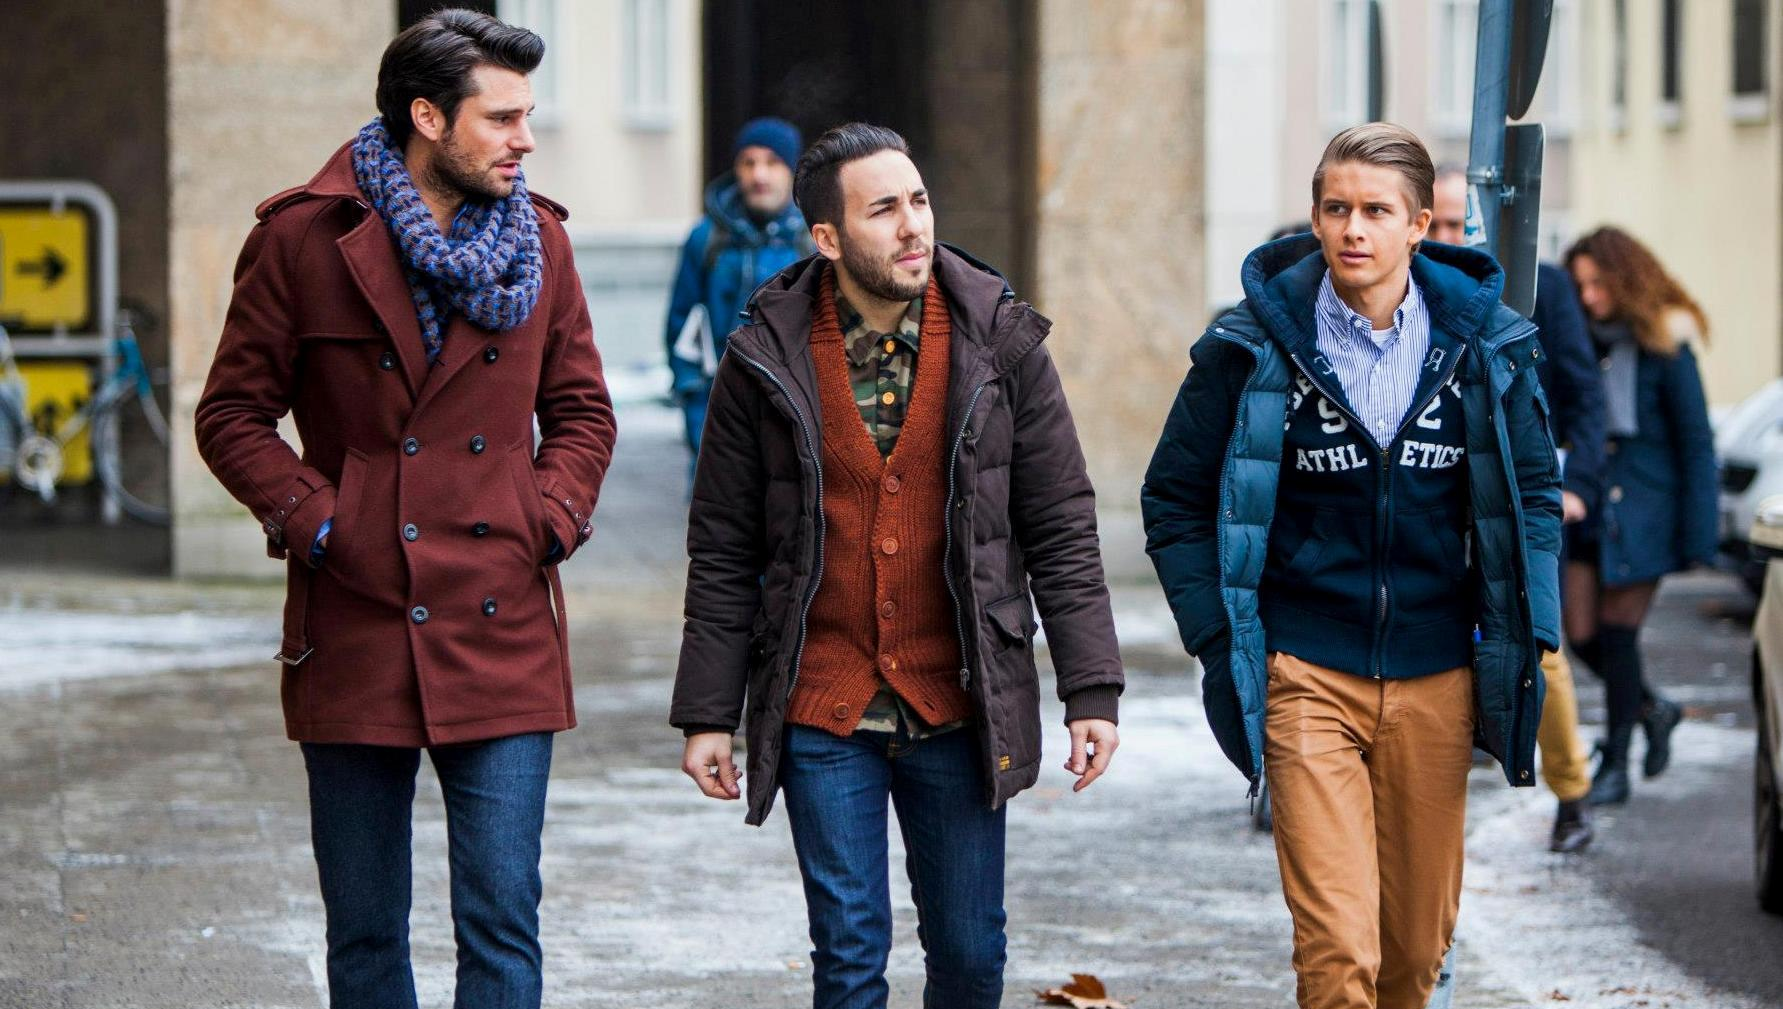 Dress up styles for winter